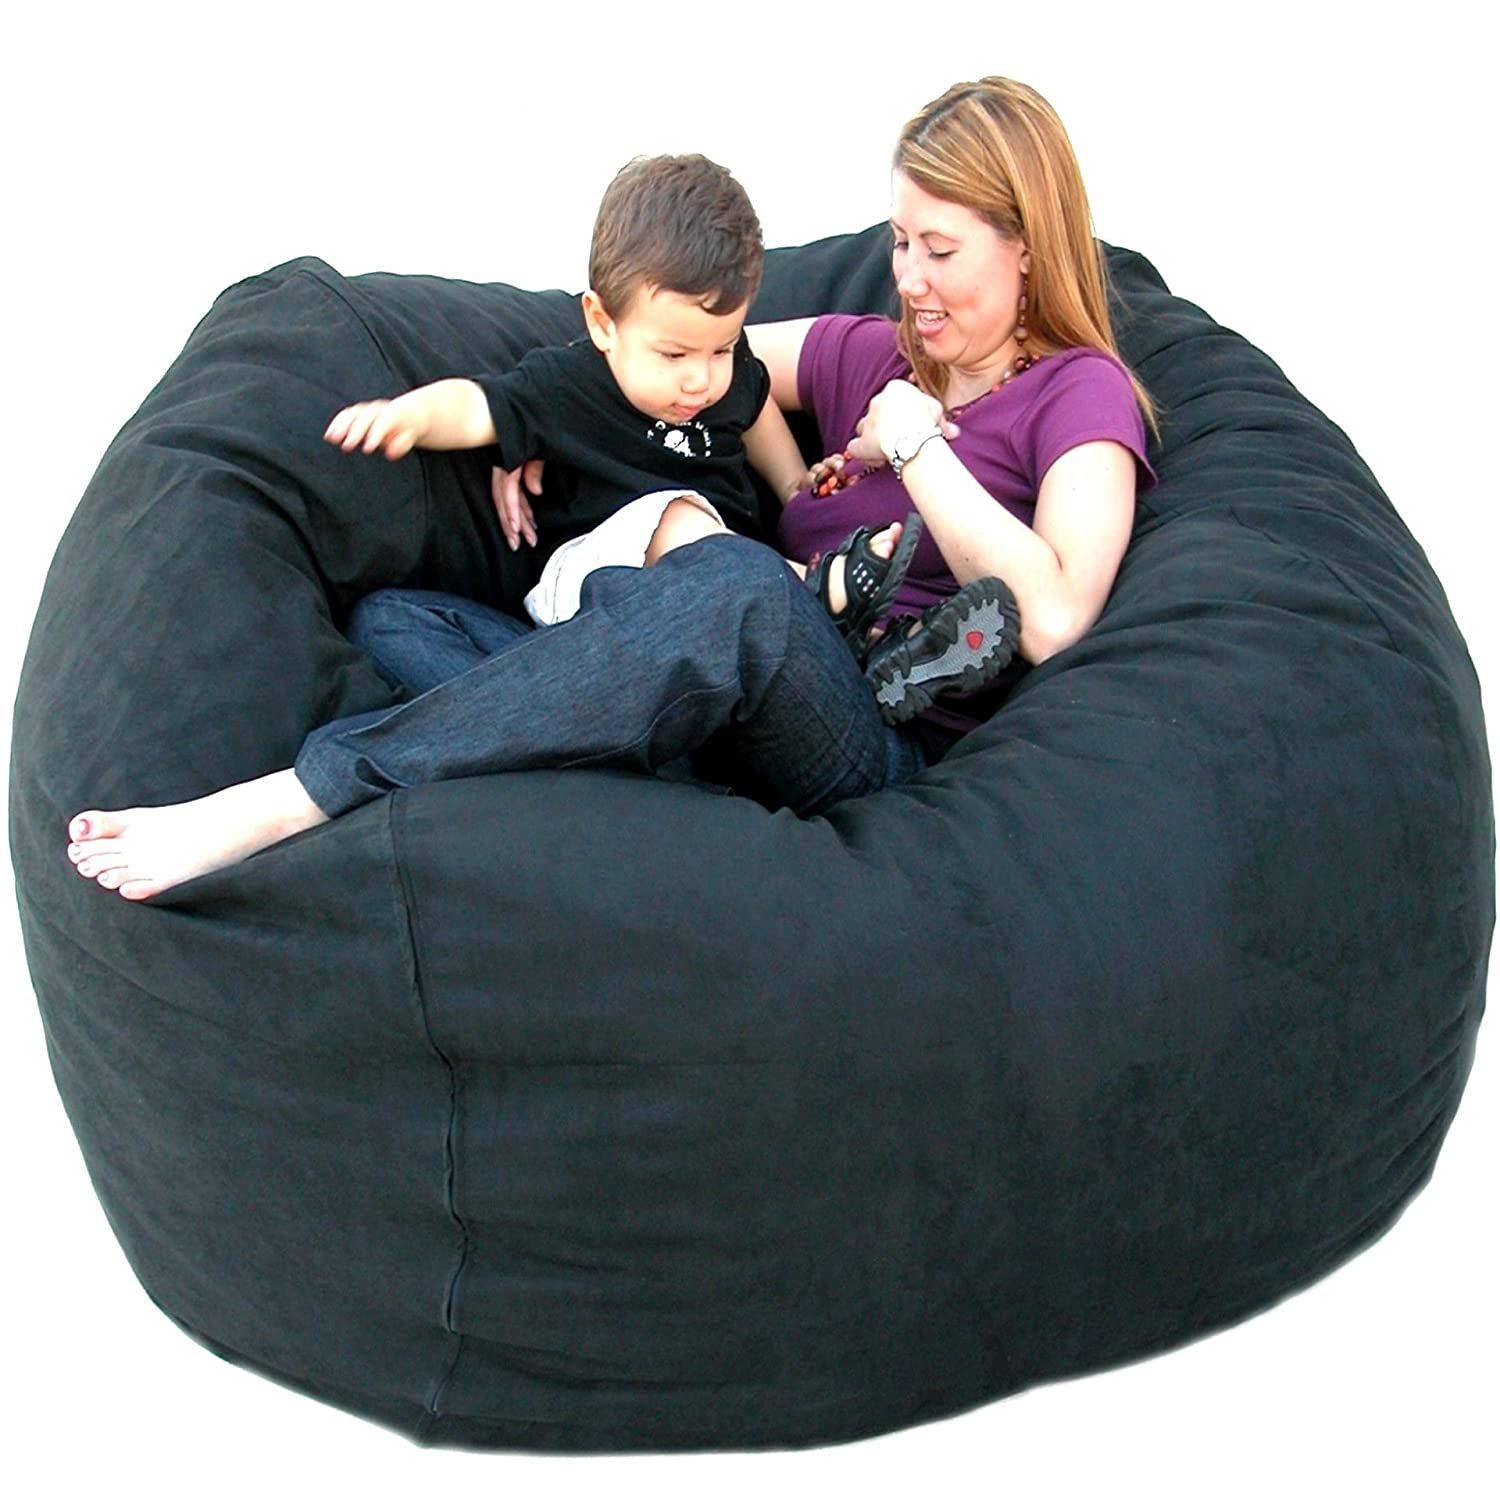 fur from big on largest item room living beanbag bag covers chairs online adults sofas chair in without filling furniture bean for free shipping